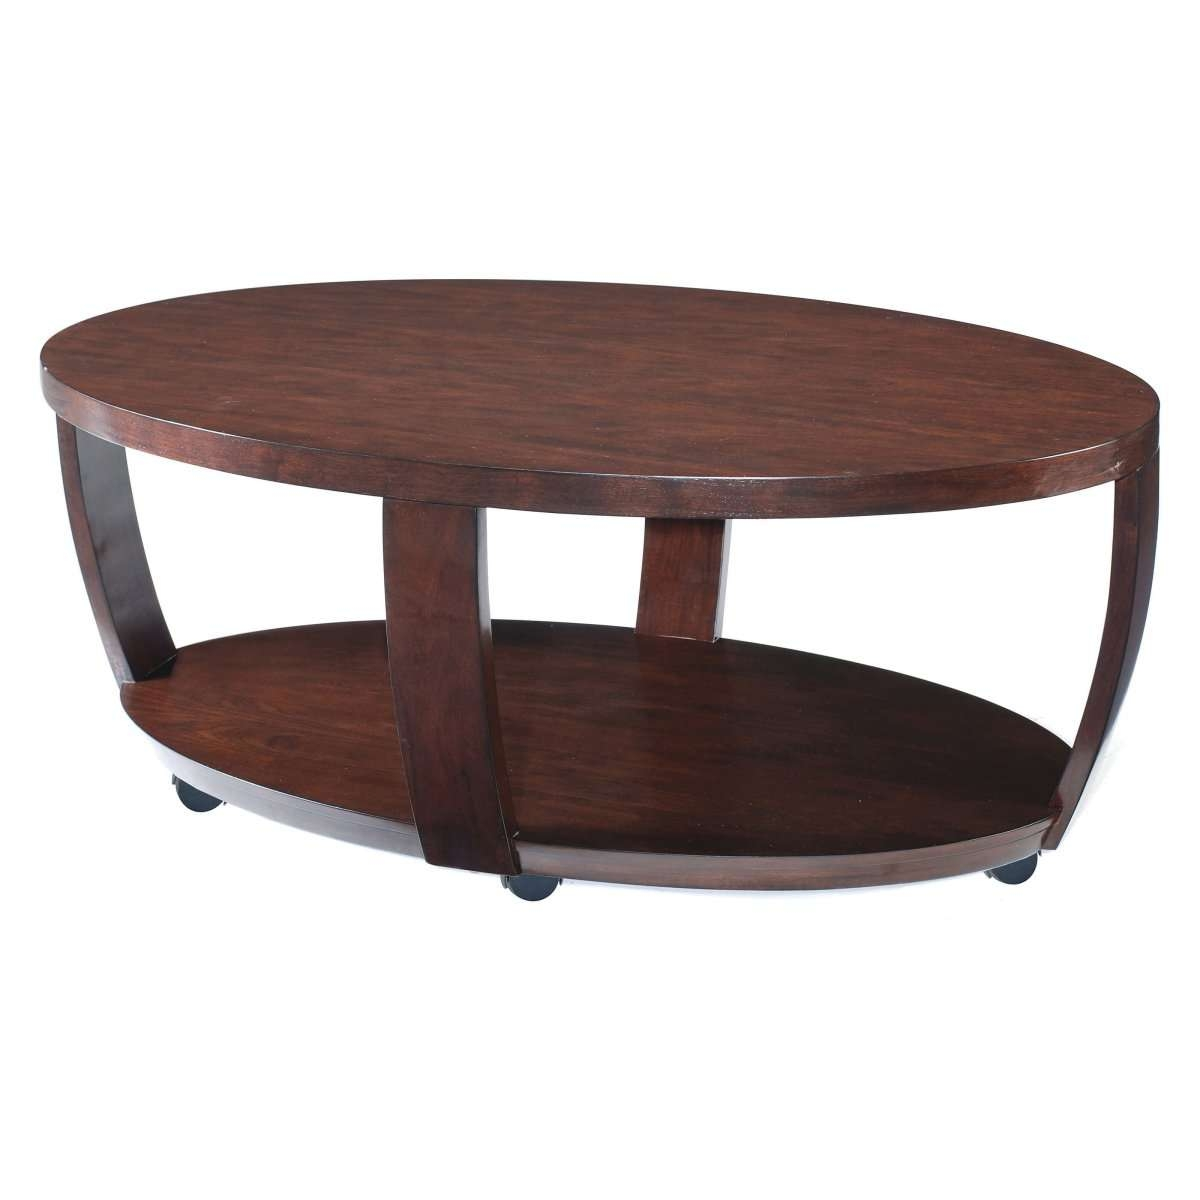 Well Known Metal Oval Coffee Tables Regarding Coffee Tables : Oval Wood Coffee Table Wooden Sets Dark Cherry (View 14 of 20)